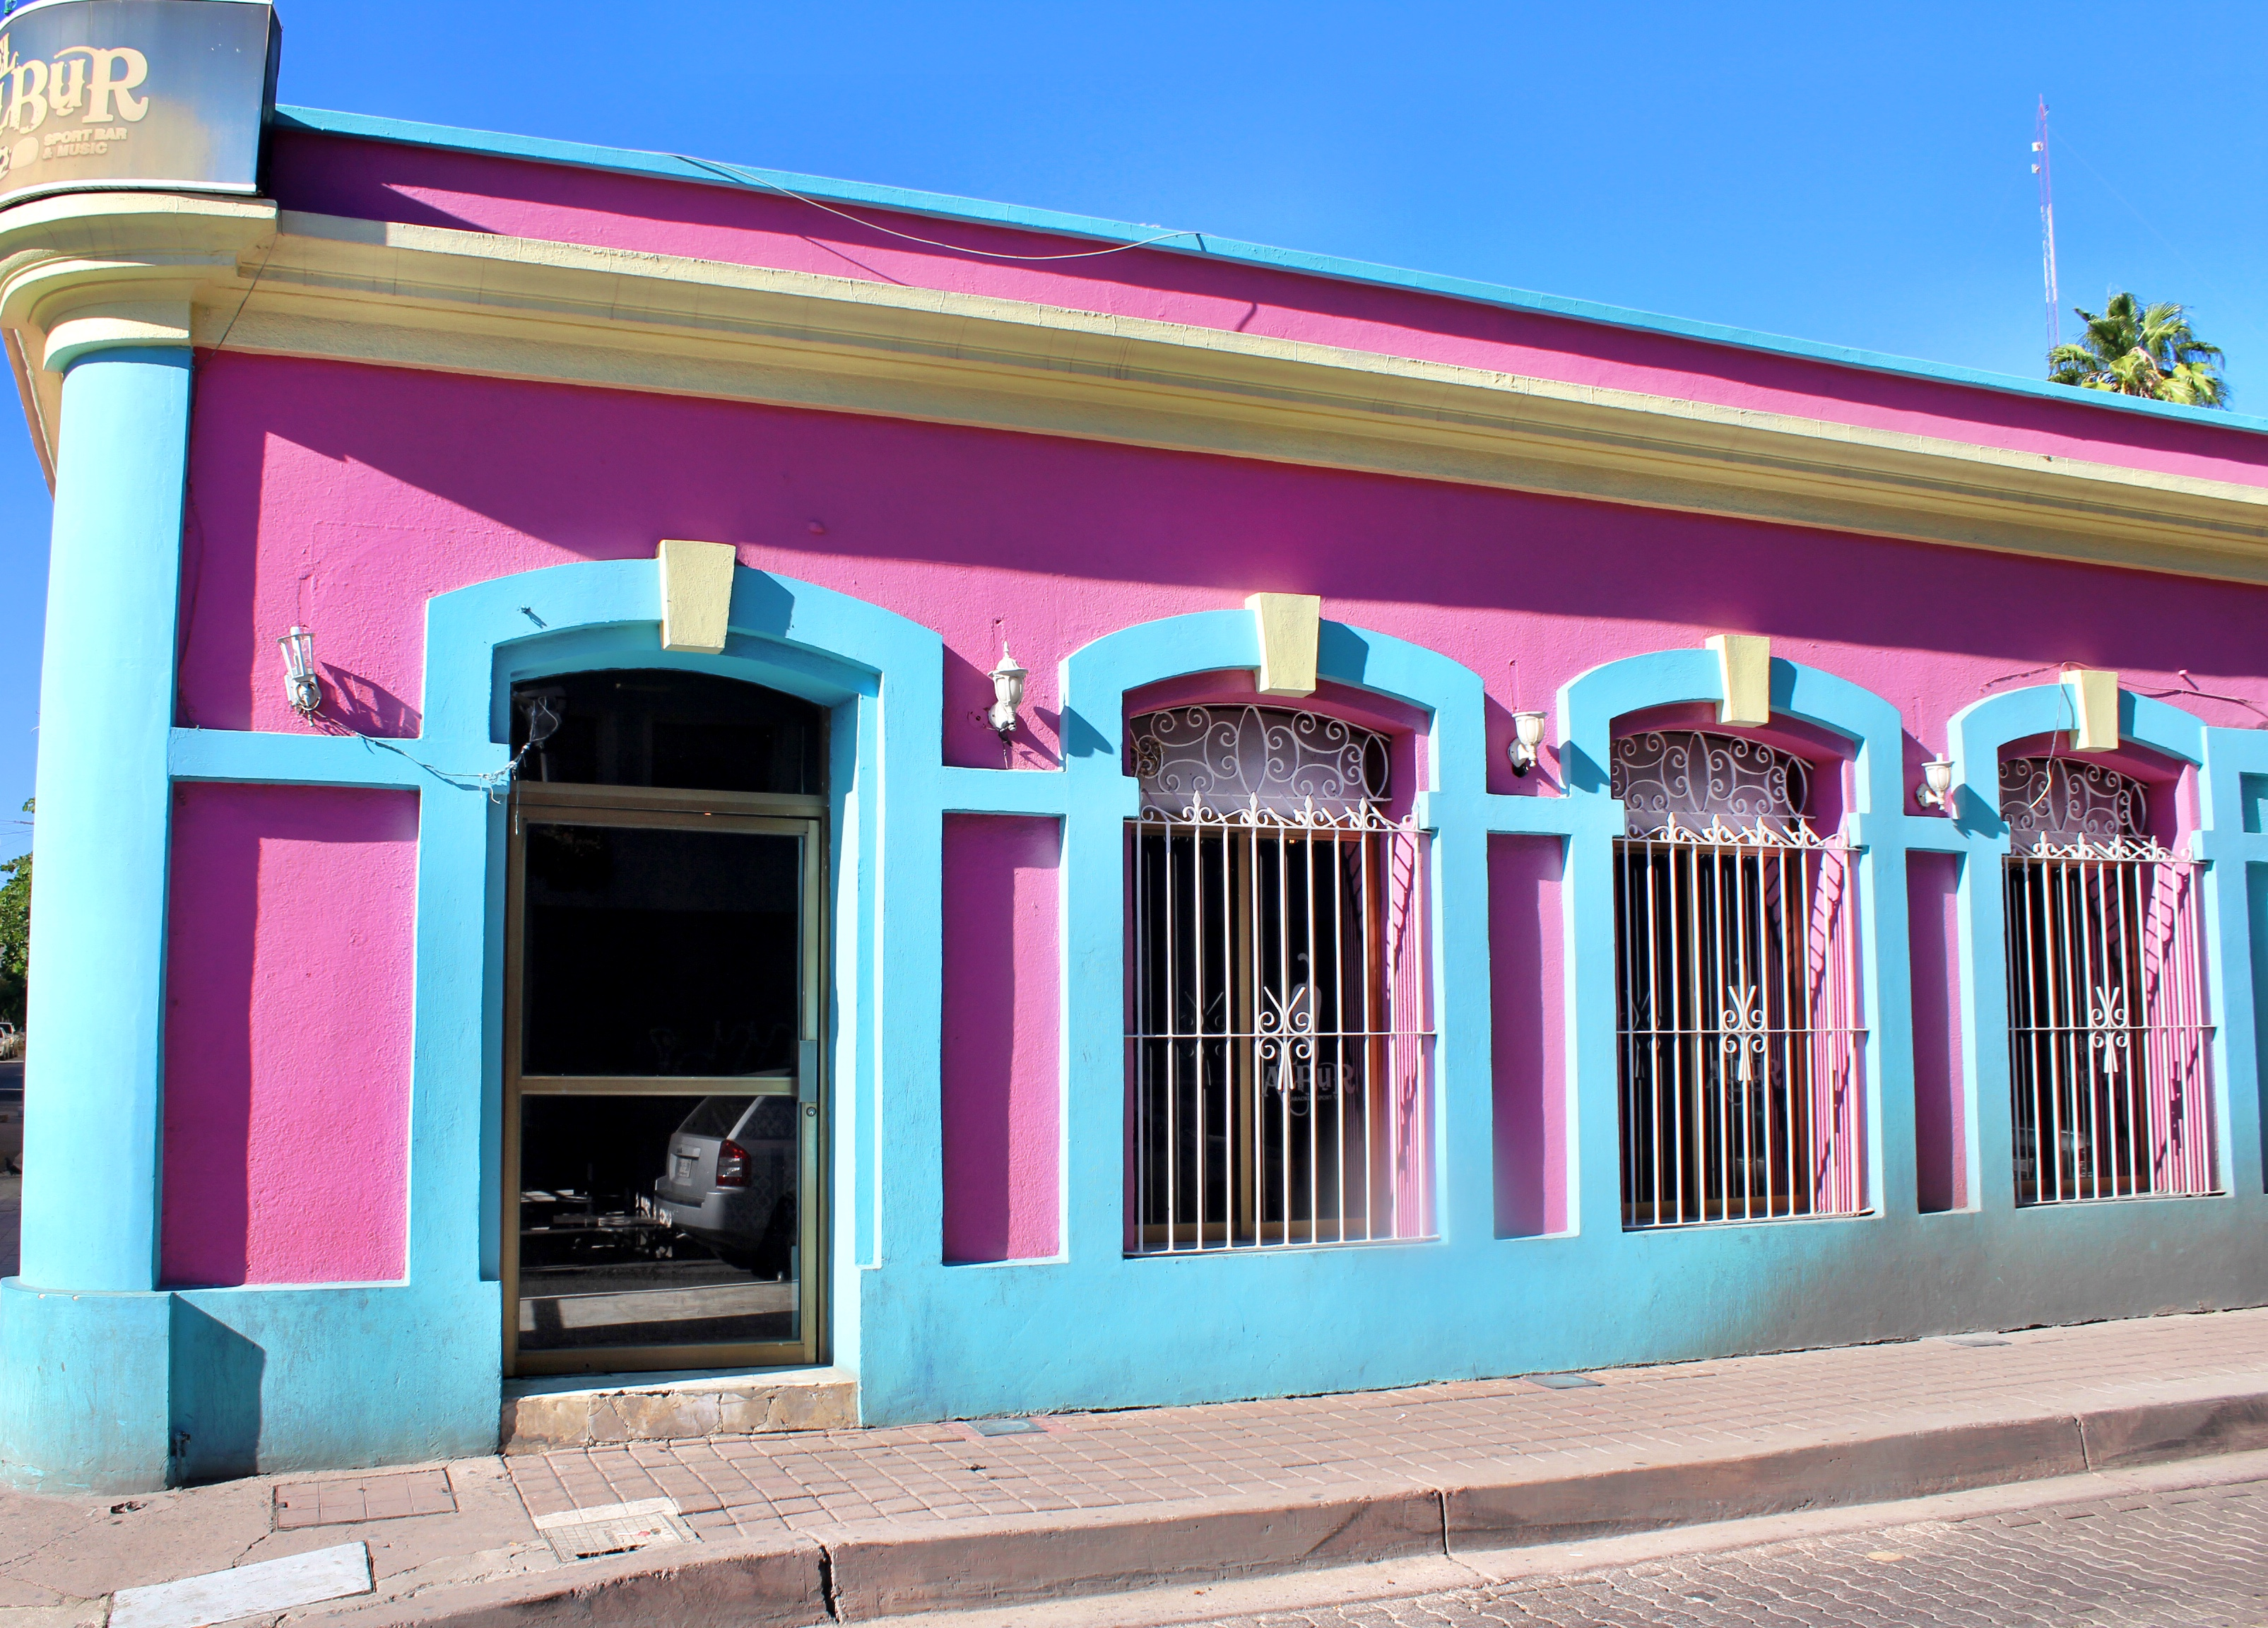 Bright and bold buildings in Old Town Mazatlán.